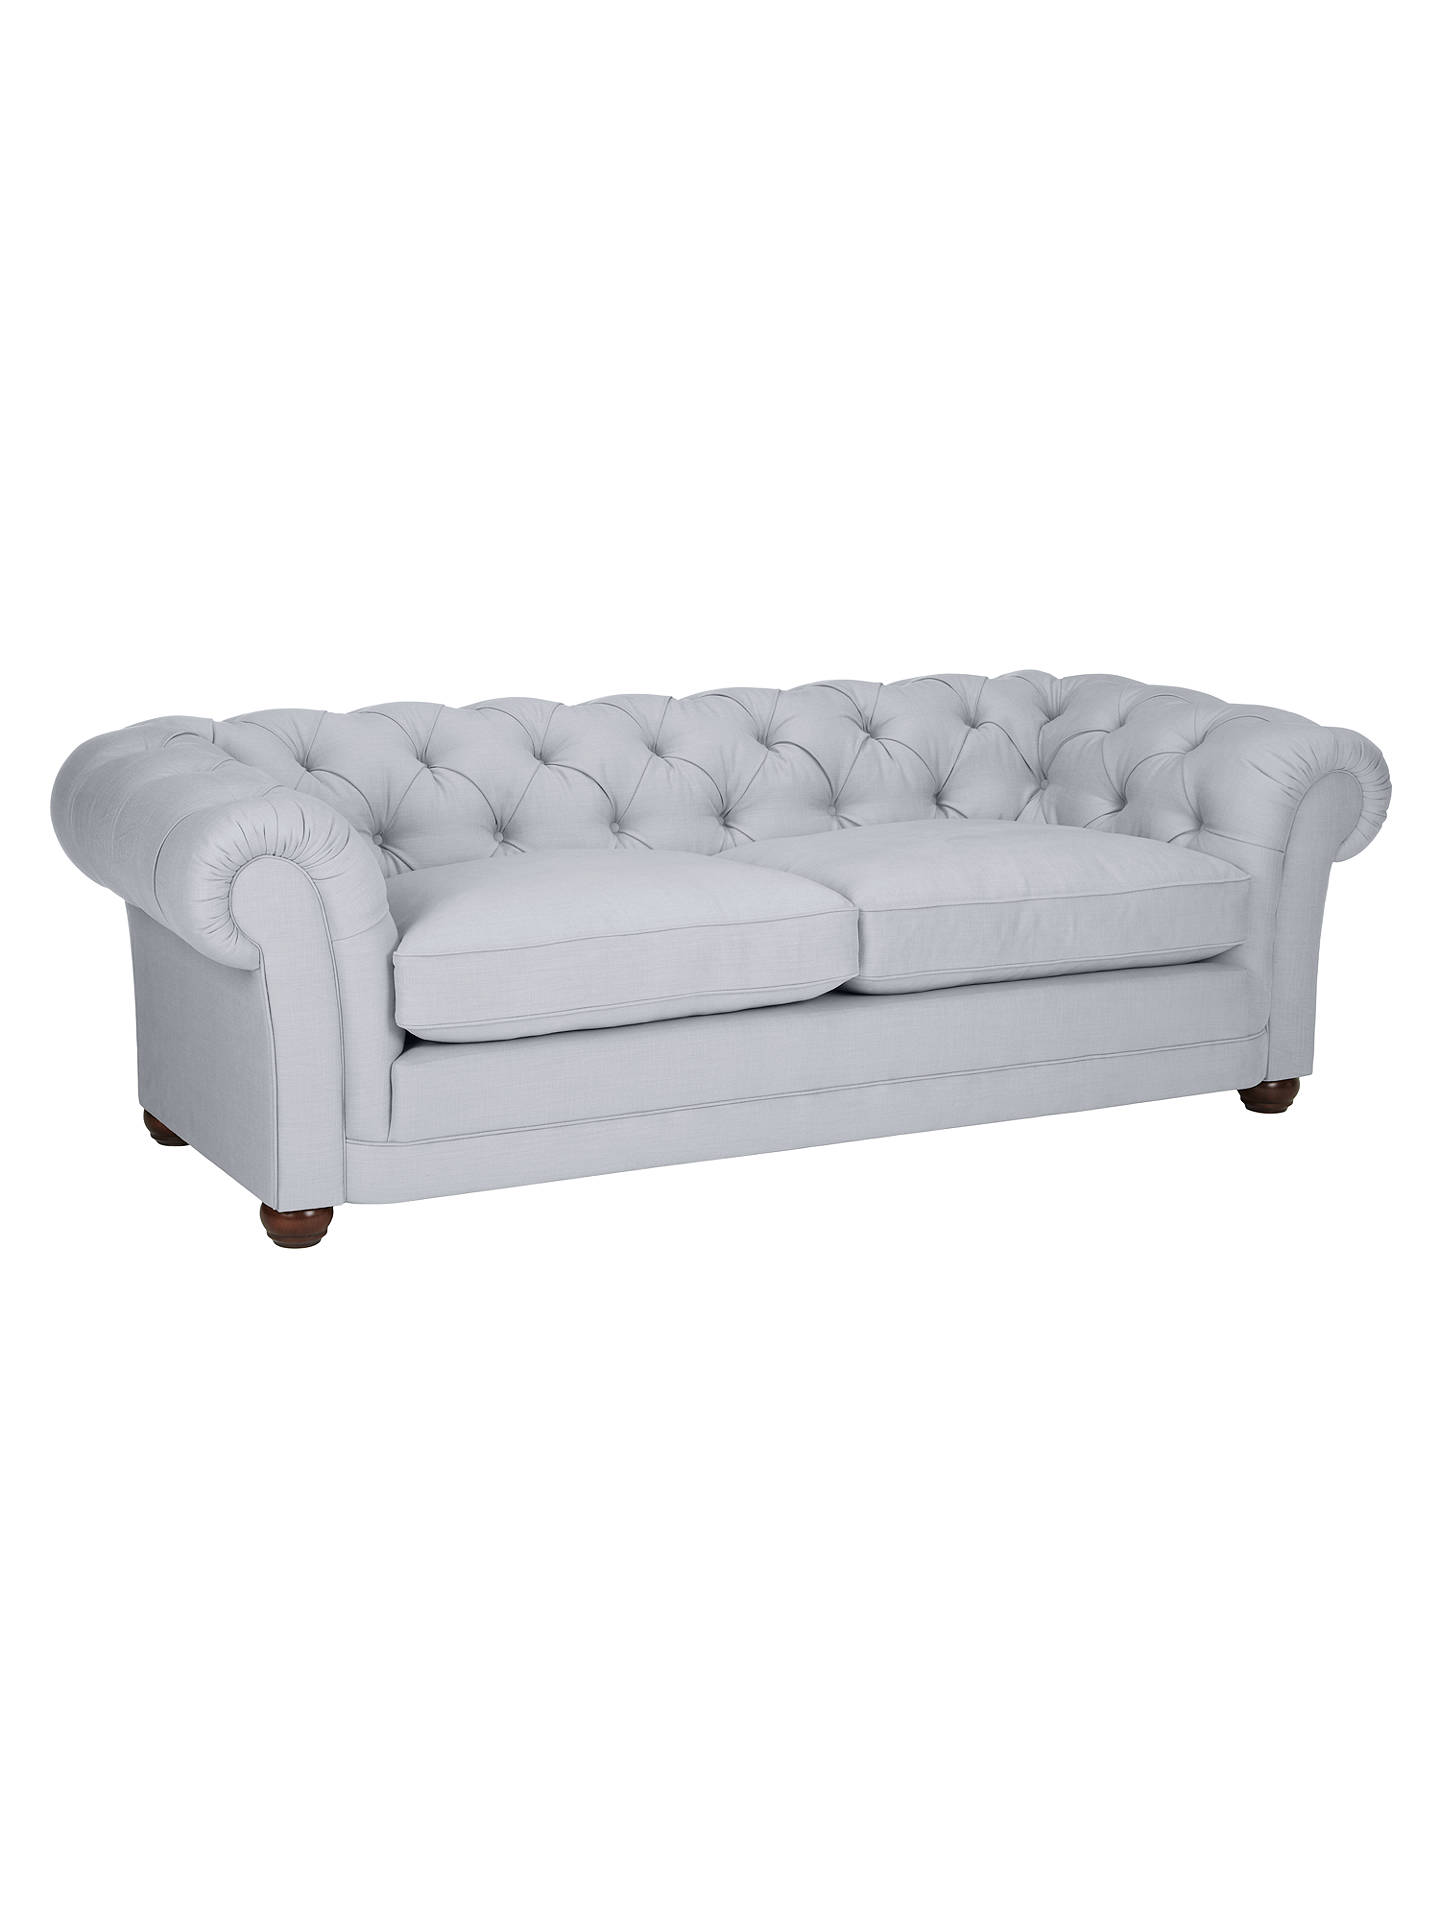 Buy John Lewis Stanford Large Semi-Aniline Leather Chesterfield Sofa, Hand Antiqued Online at johnlewis.com